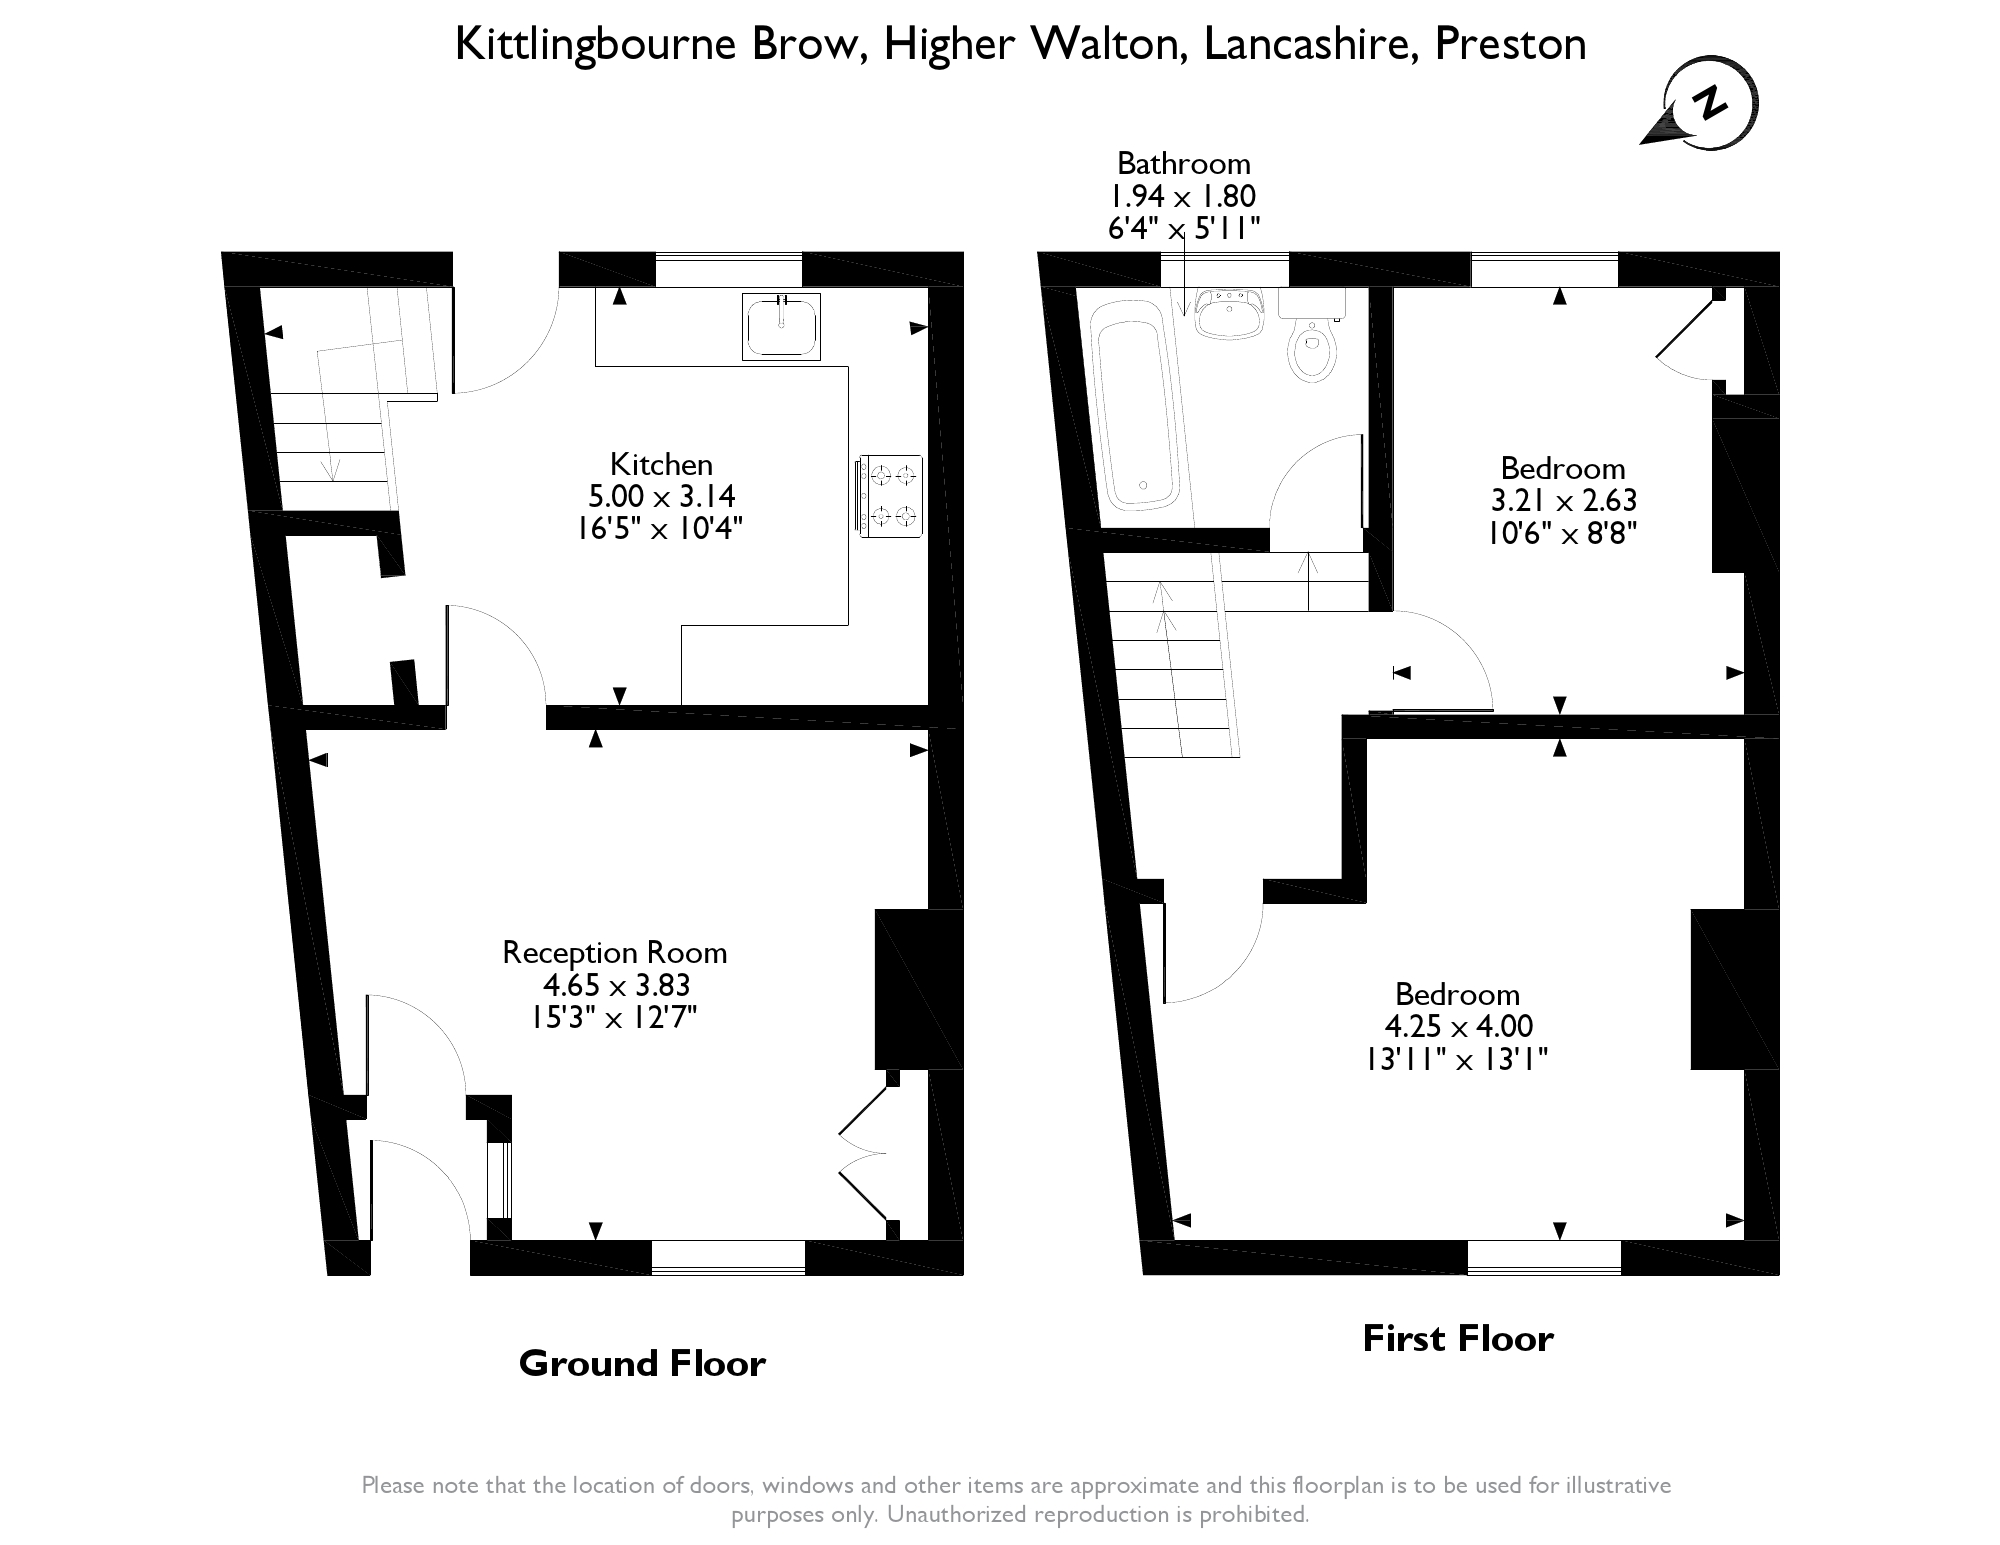 Kittlingbourne Brow,Higher Walton,Preston,PR5 floor plan